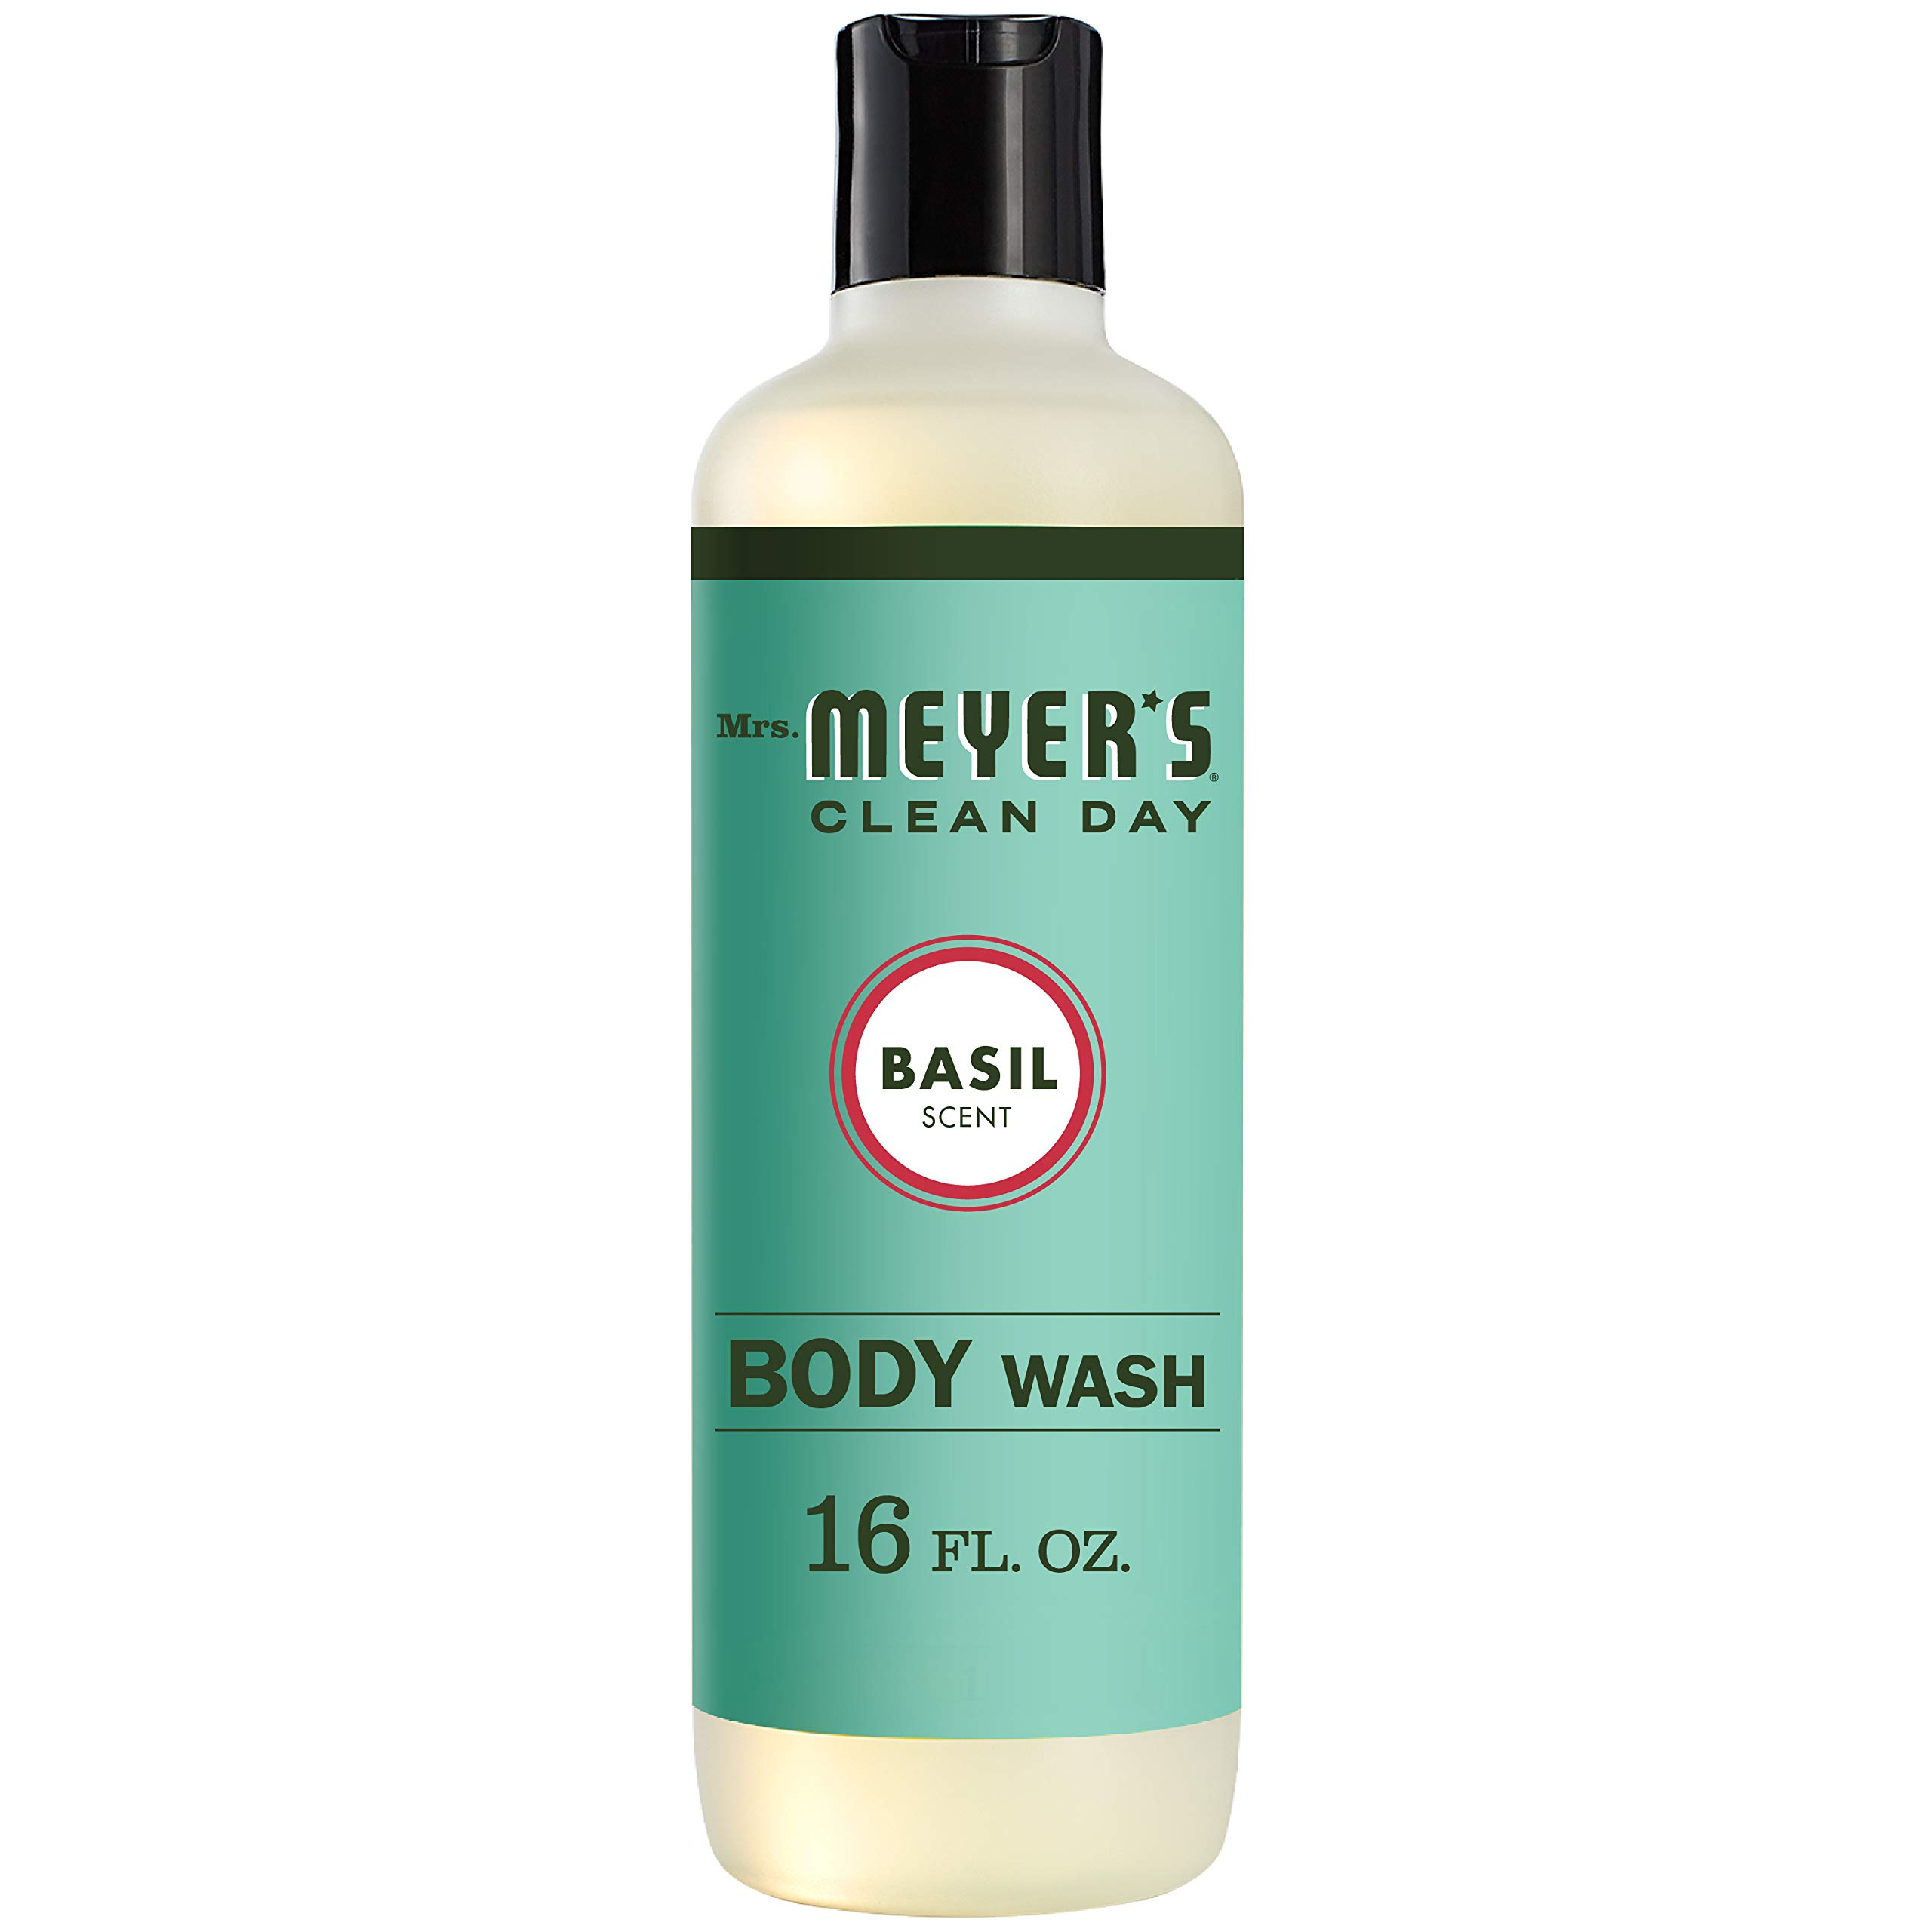 Mrs. Meyer's Clean Day Moisturizing Body Wash, Cruelty Free and Biodegradable Formula, Basil Scent, 16 oz